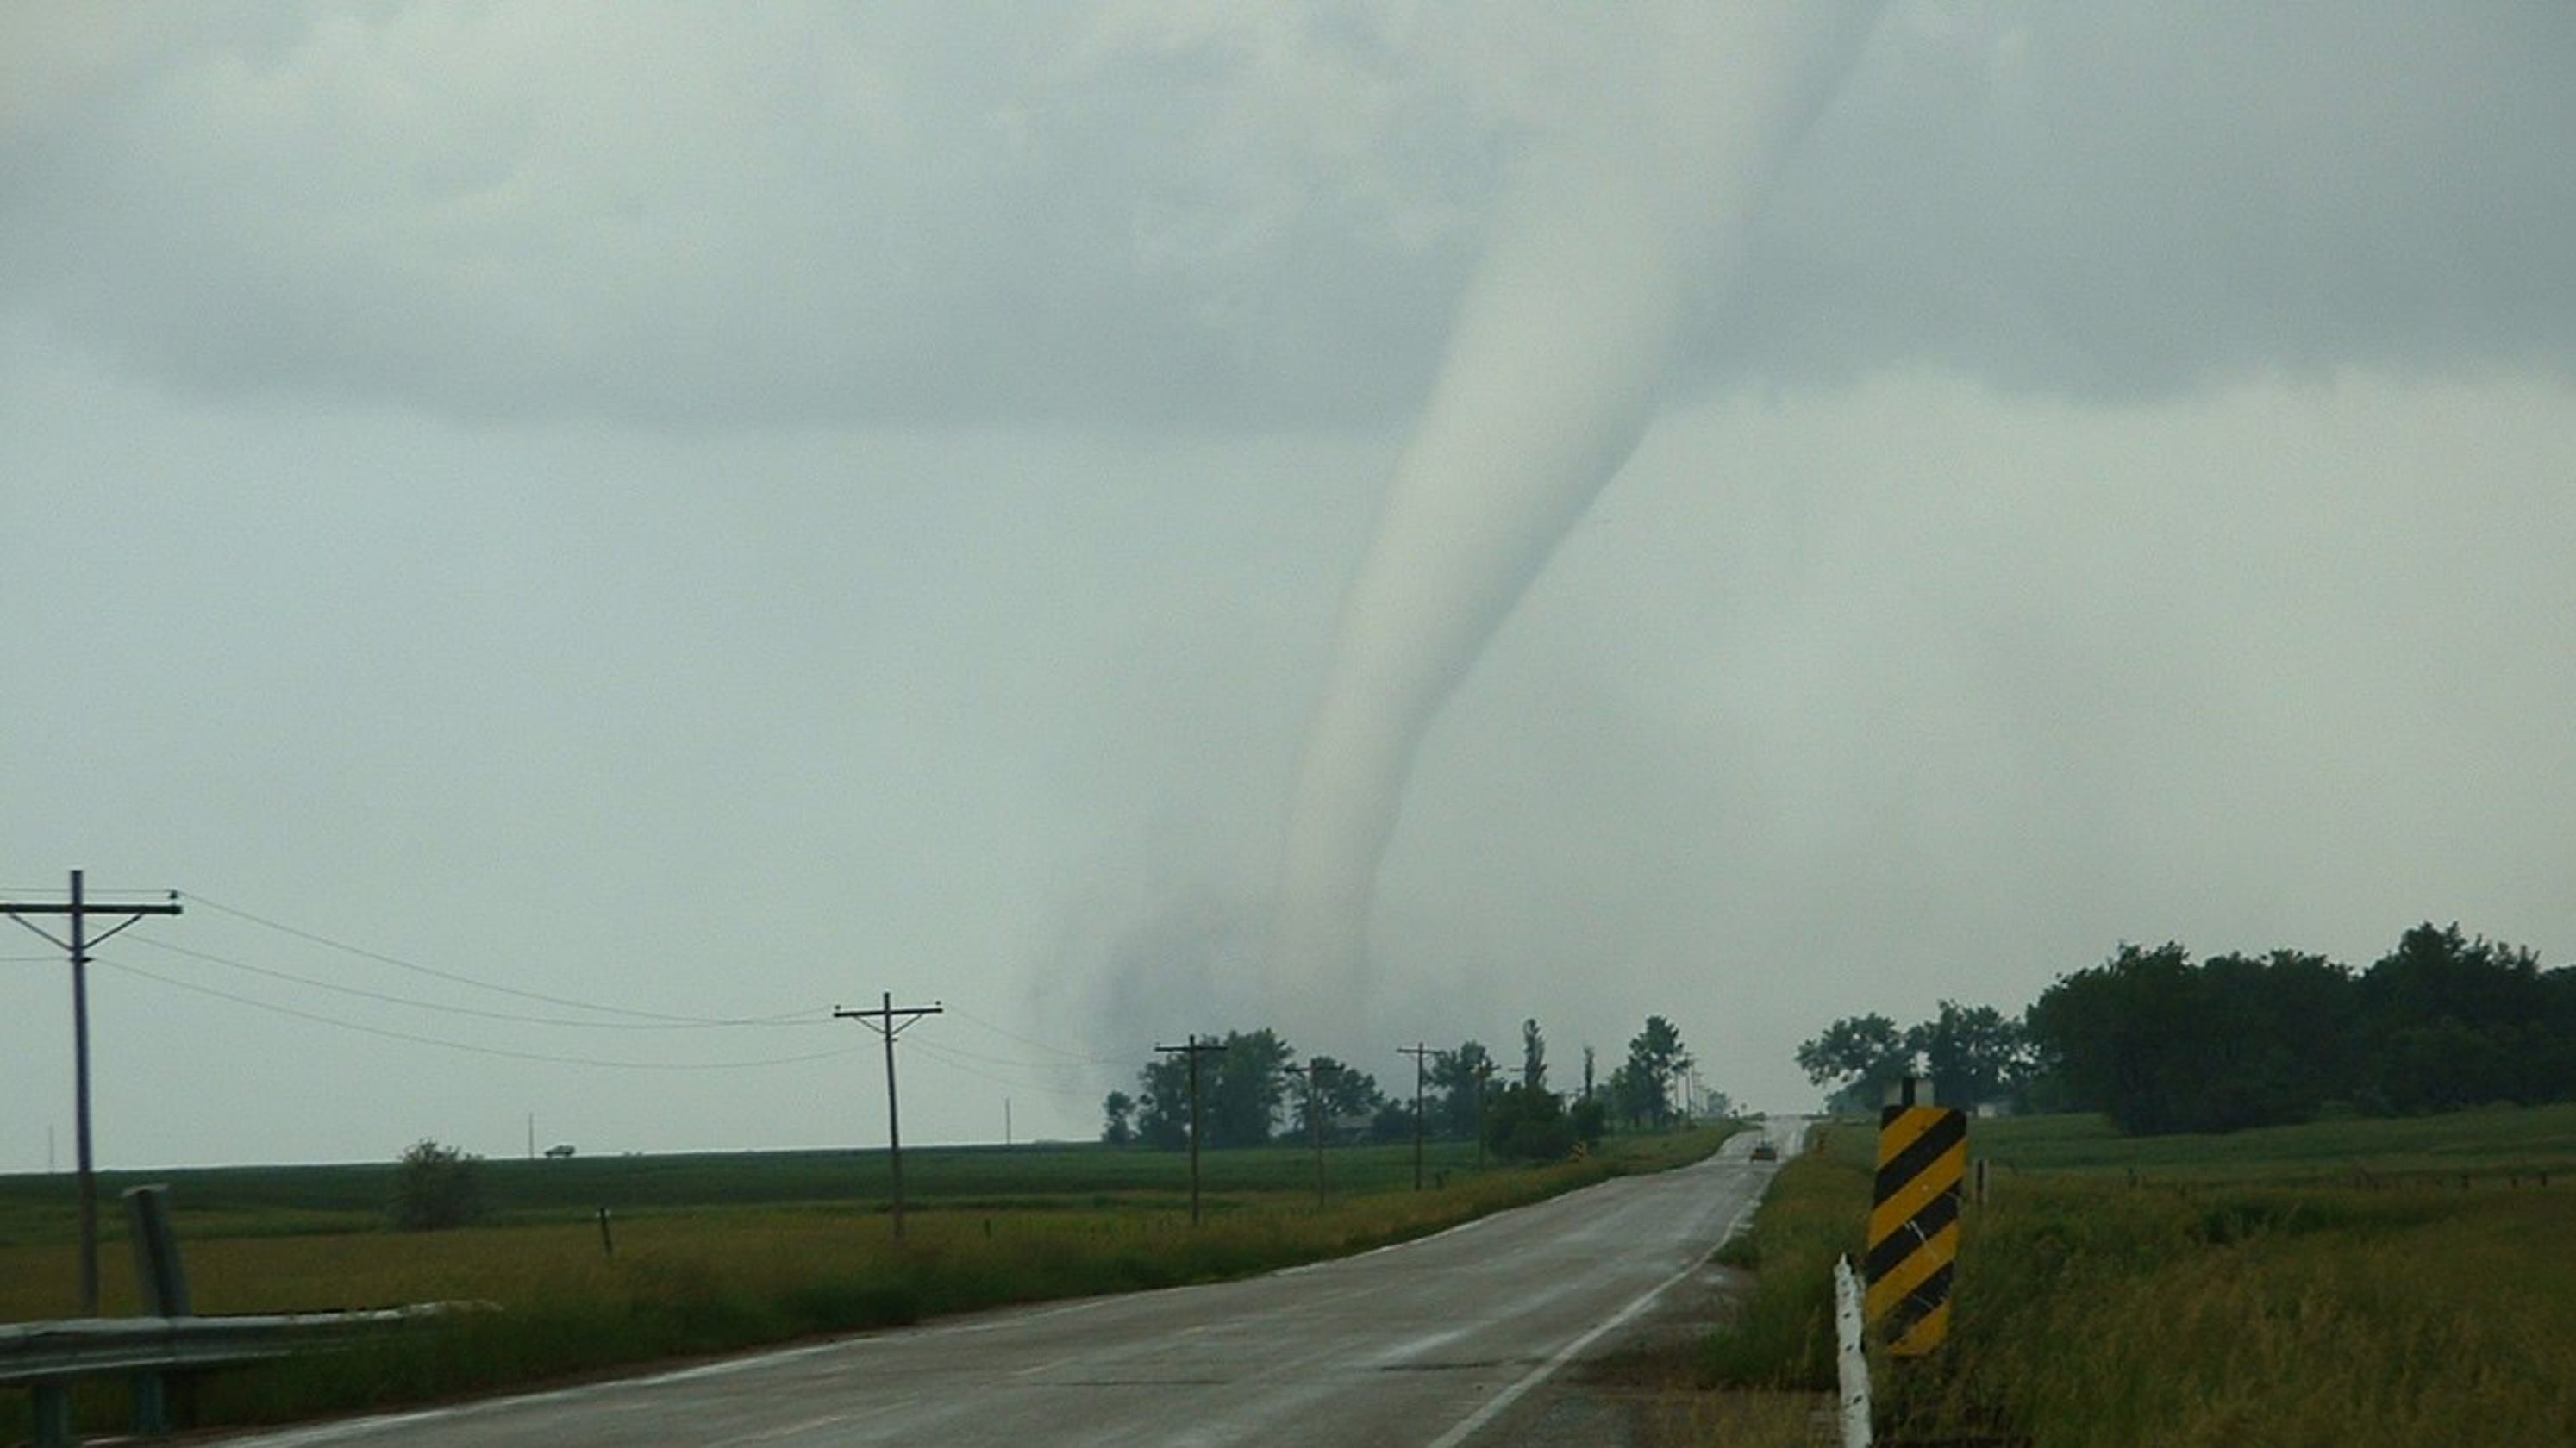 The history of South Dakota's most dangerous tornadoes